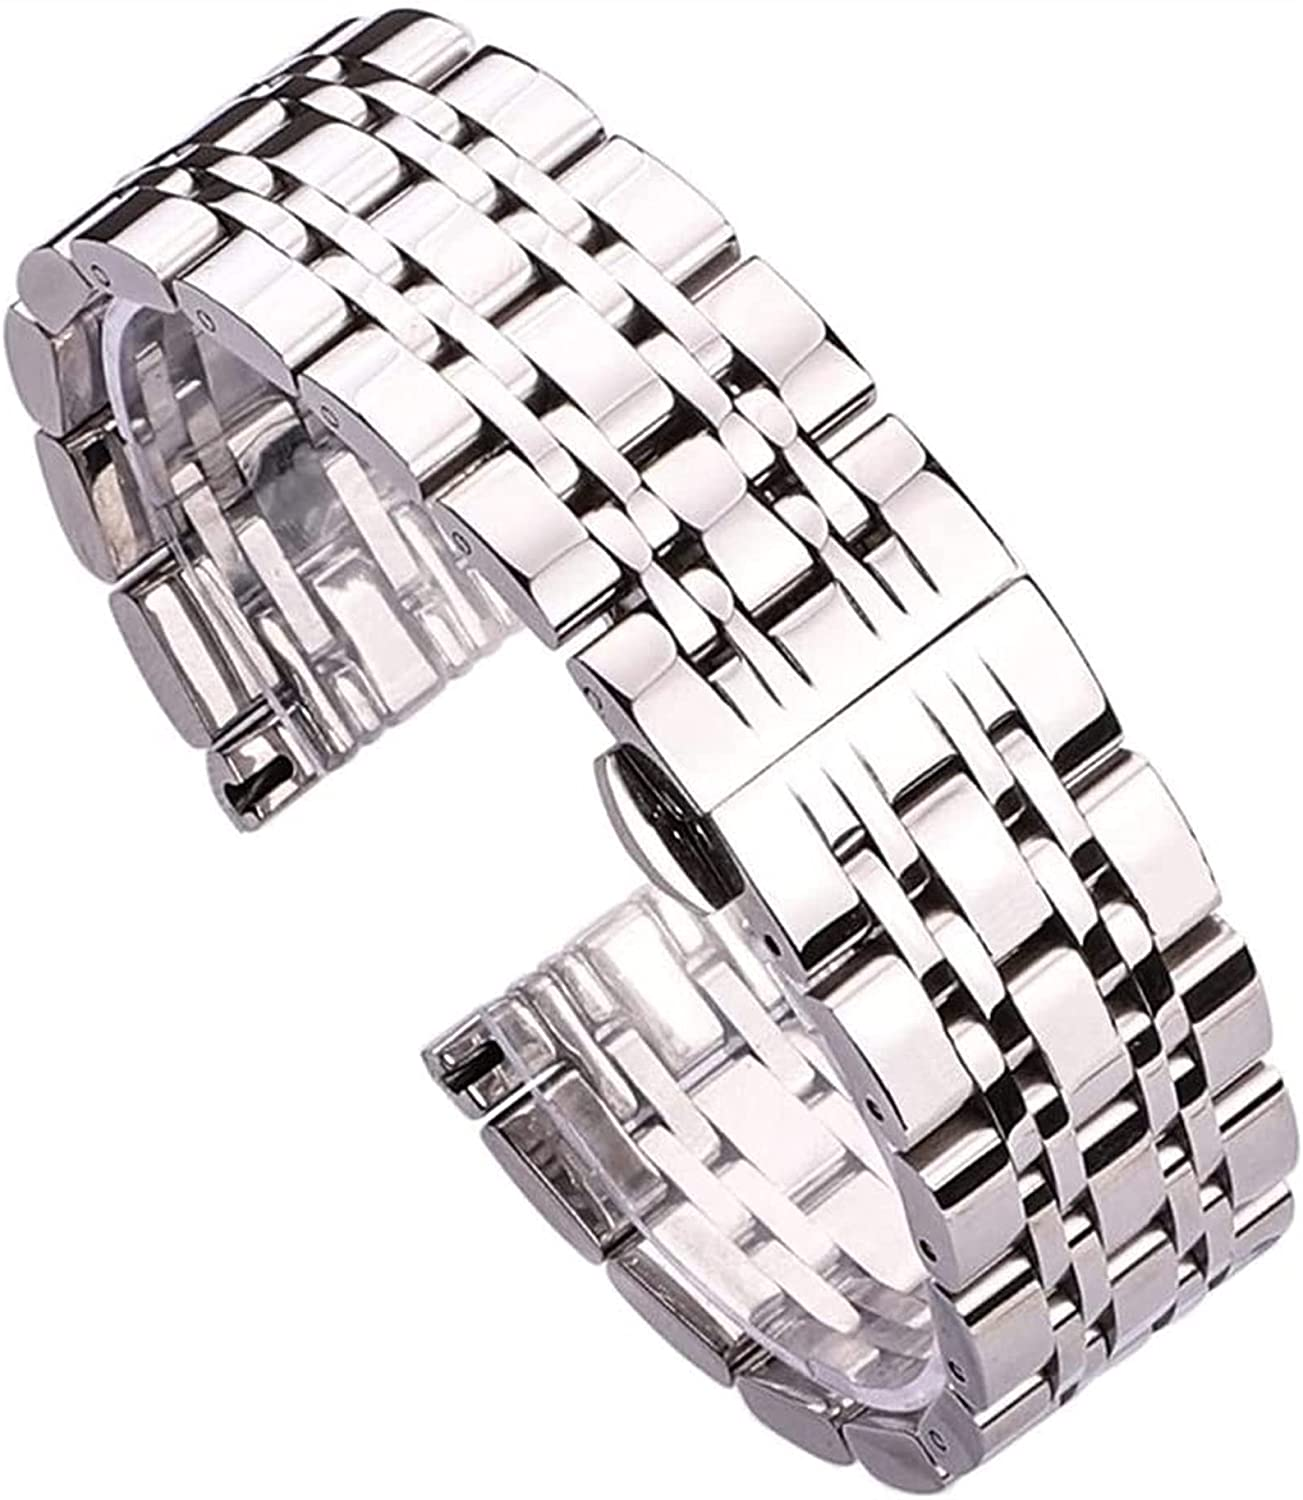 chenghuax Watch Strap 18mm 20mm Stainless Steel Band 22mm Sacramento Ranking TOP4 Mall